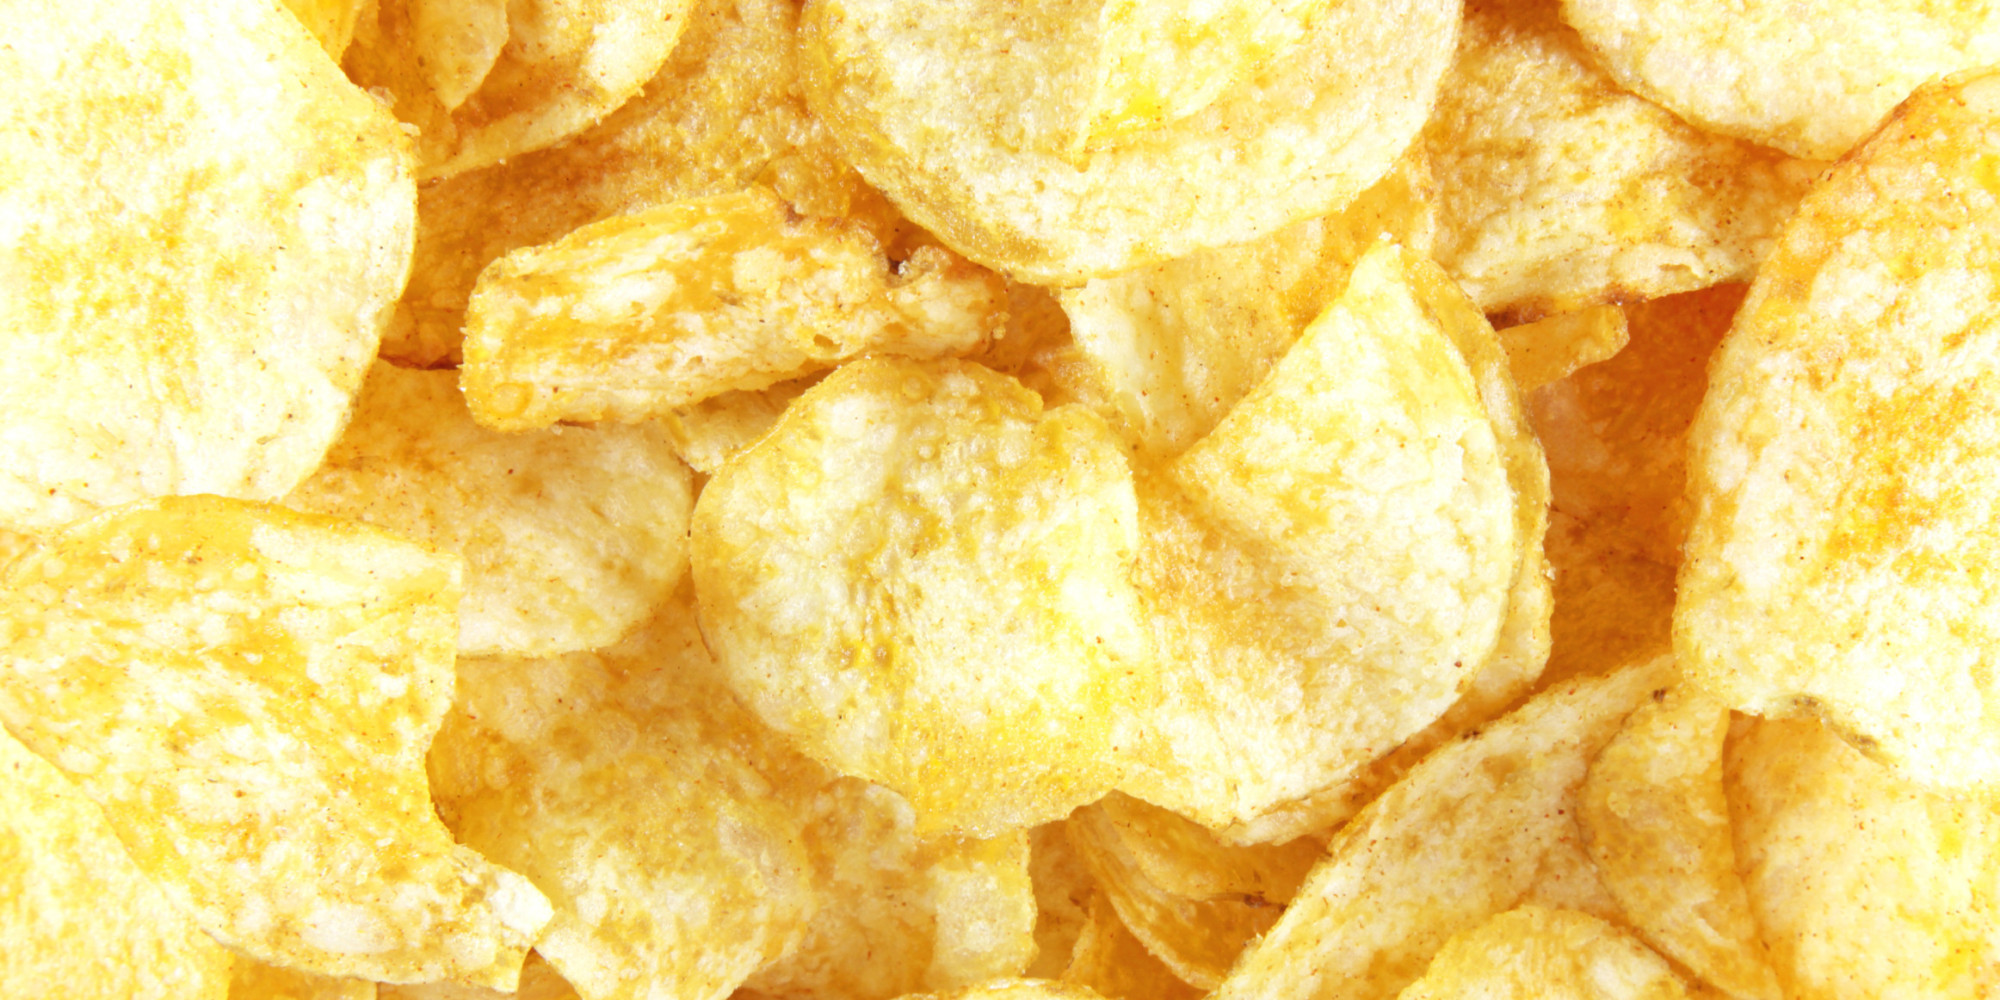 ask the expert are kettle cooked potato chips healthier